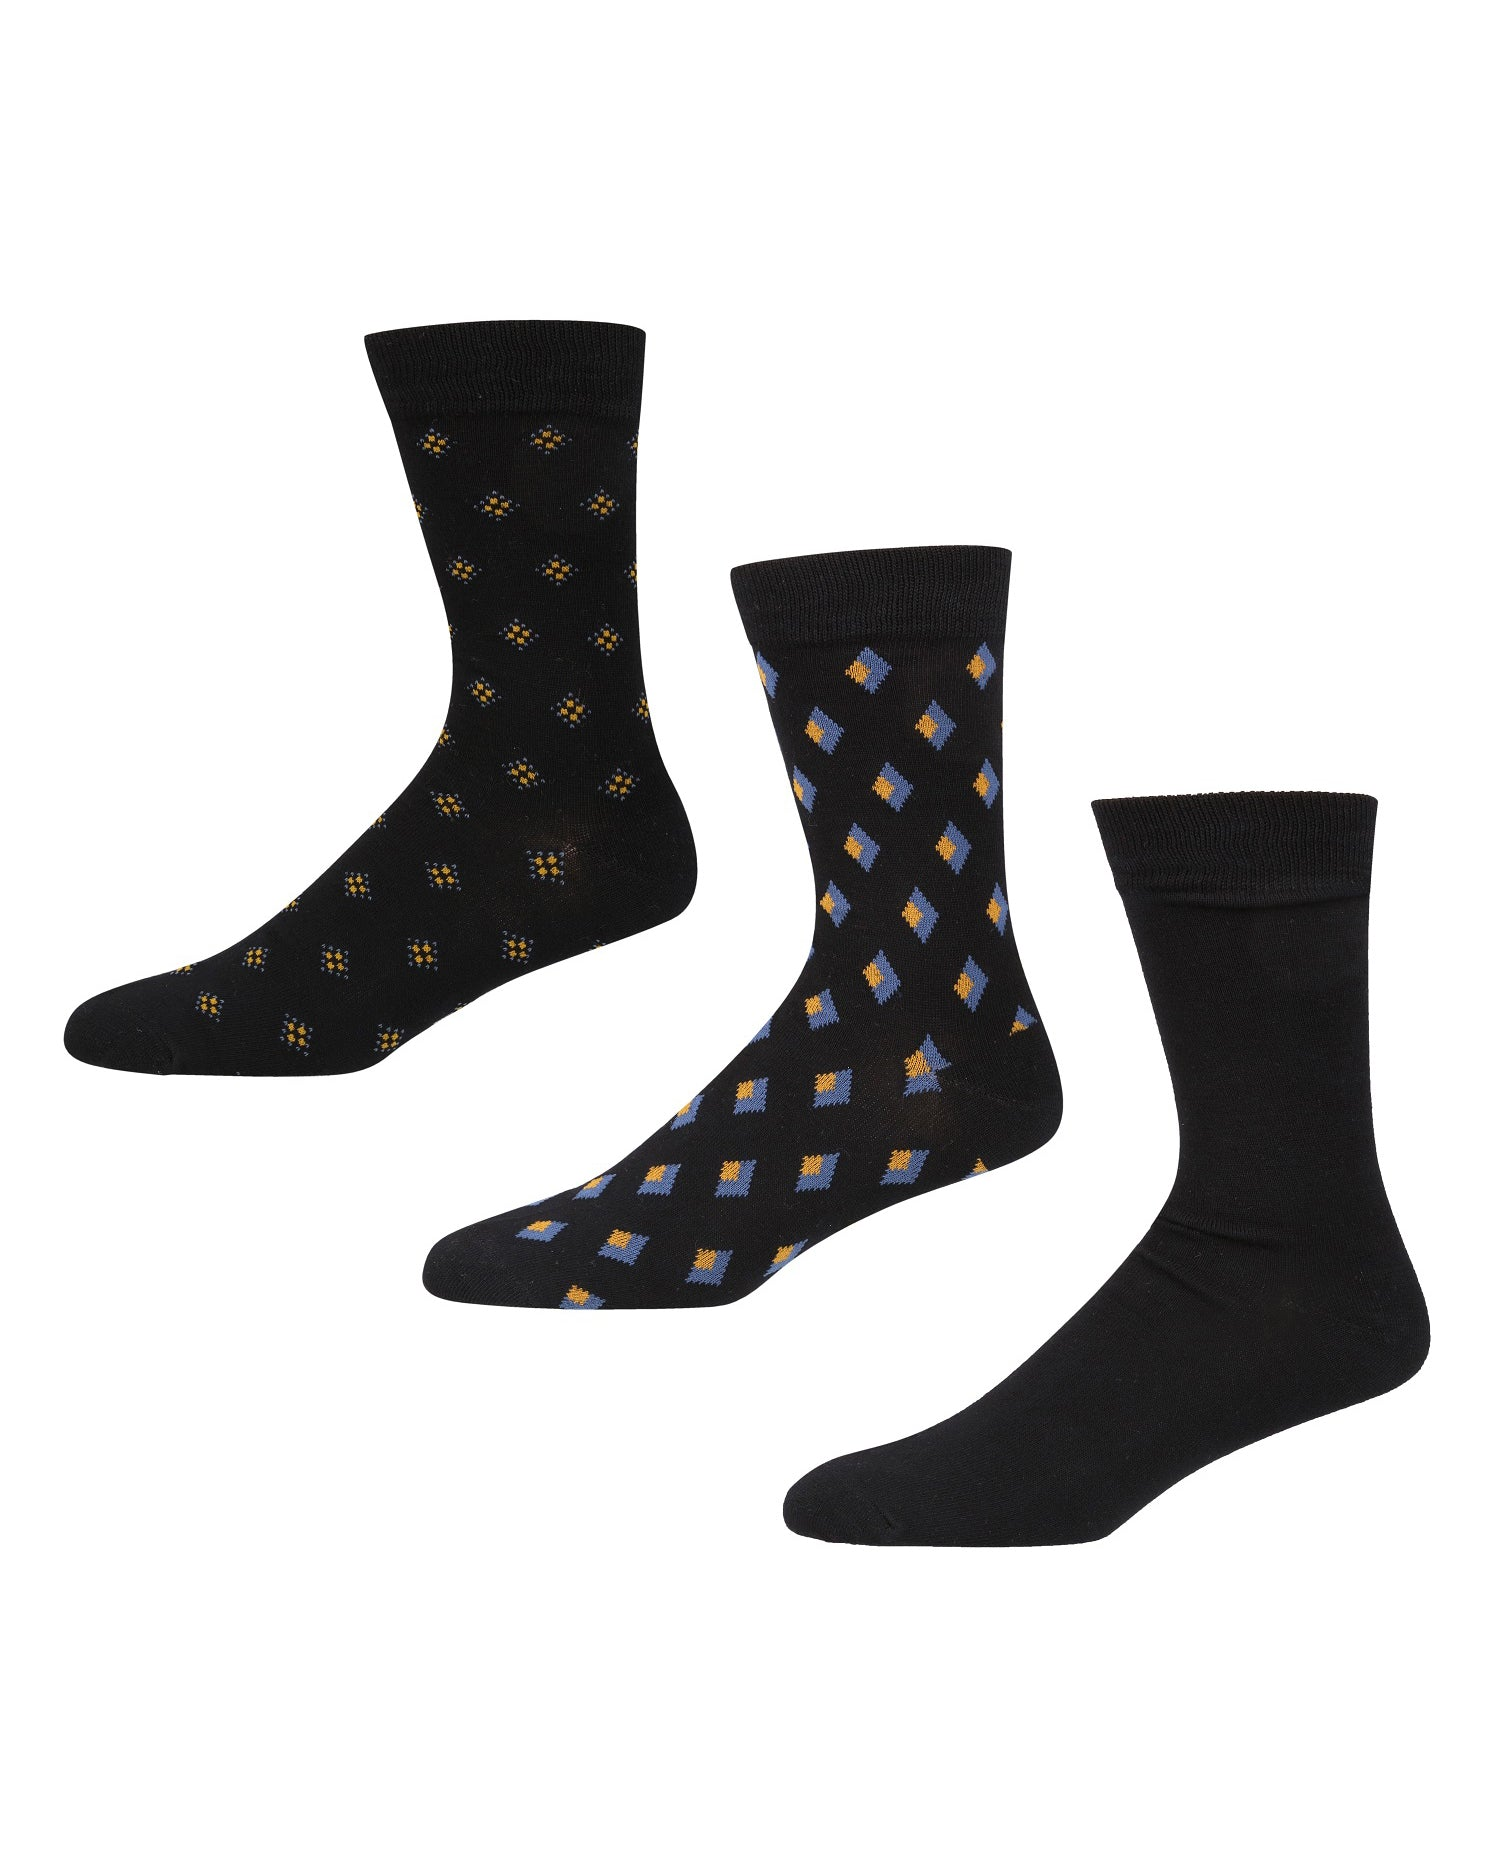 Valyra Logic Men's 3-Pack Socks - Black/Chai Tea